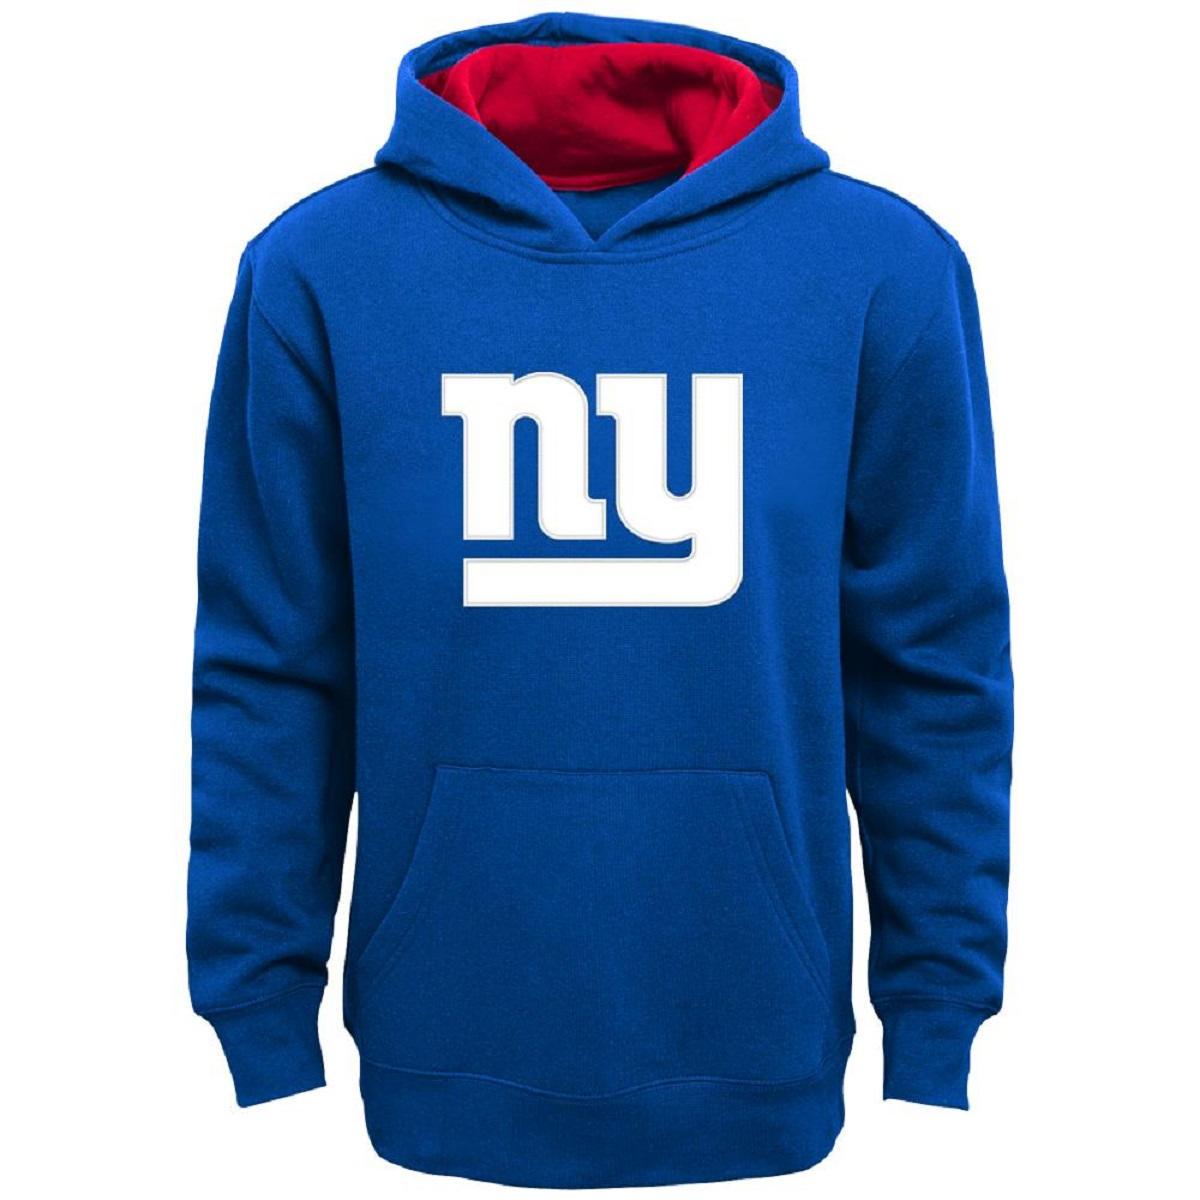 New York Giants Blue Youth Primary Hooded Sweatshirt Hoody (Youth L)